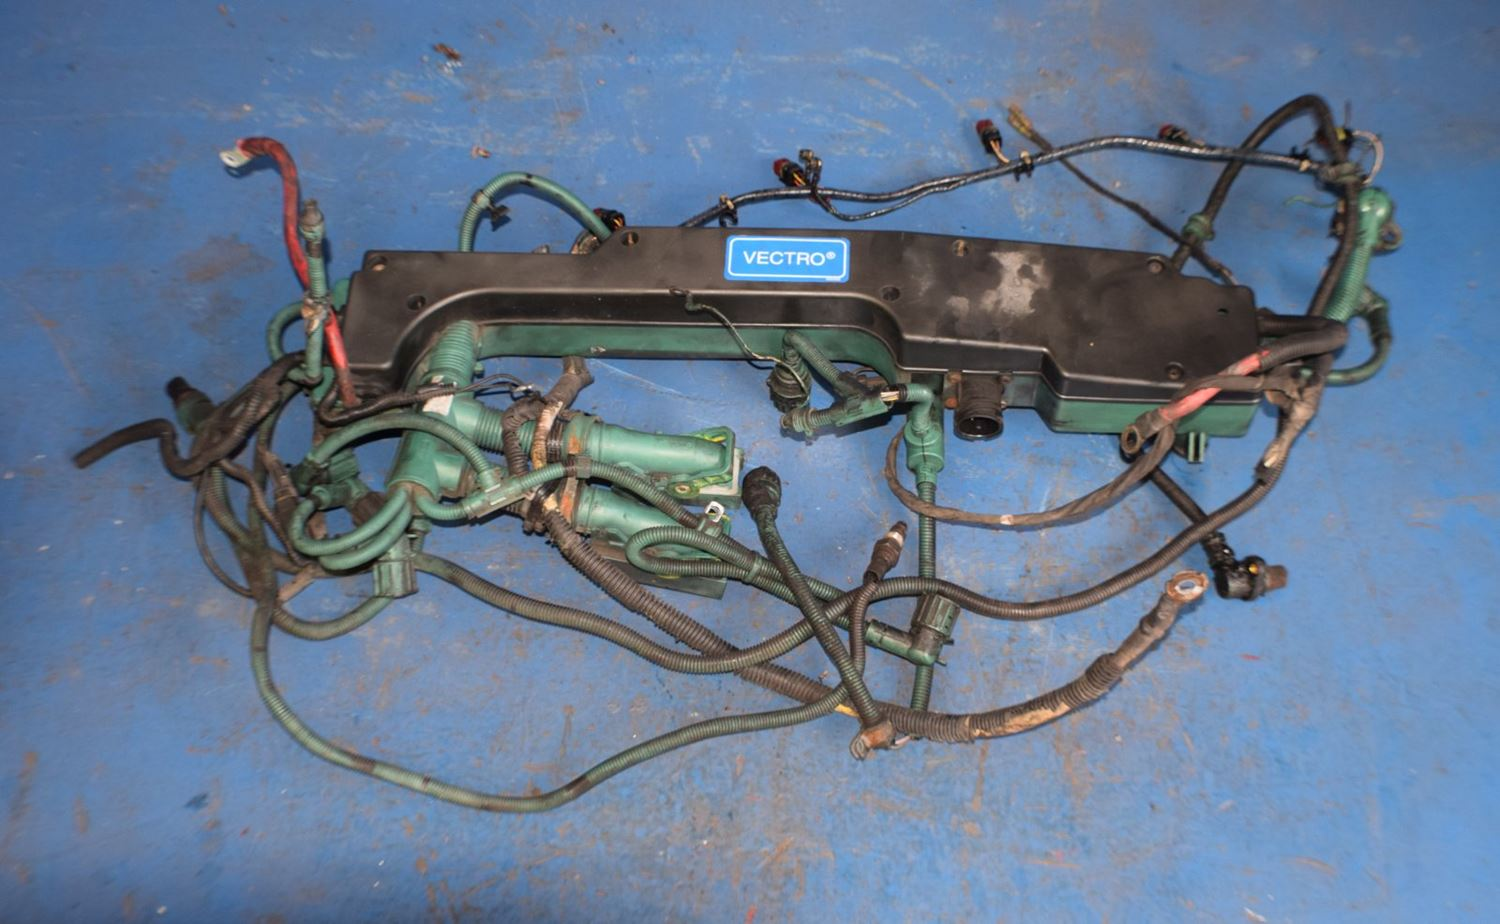 Volvo-D12-Wiring-Harnesses-xQ4E3Rr9BI4t_f Washer Wire Harness on wire adapter, wire bracket, wire furniture, wire screws, wire bushing, wire ceiling fan, wire pulley, wire grill, wire circlip,